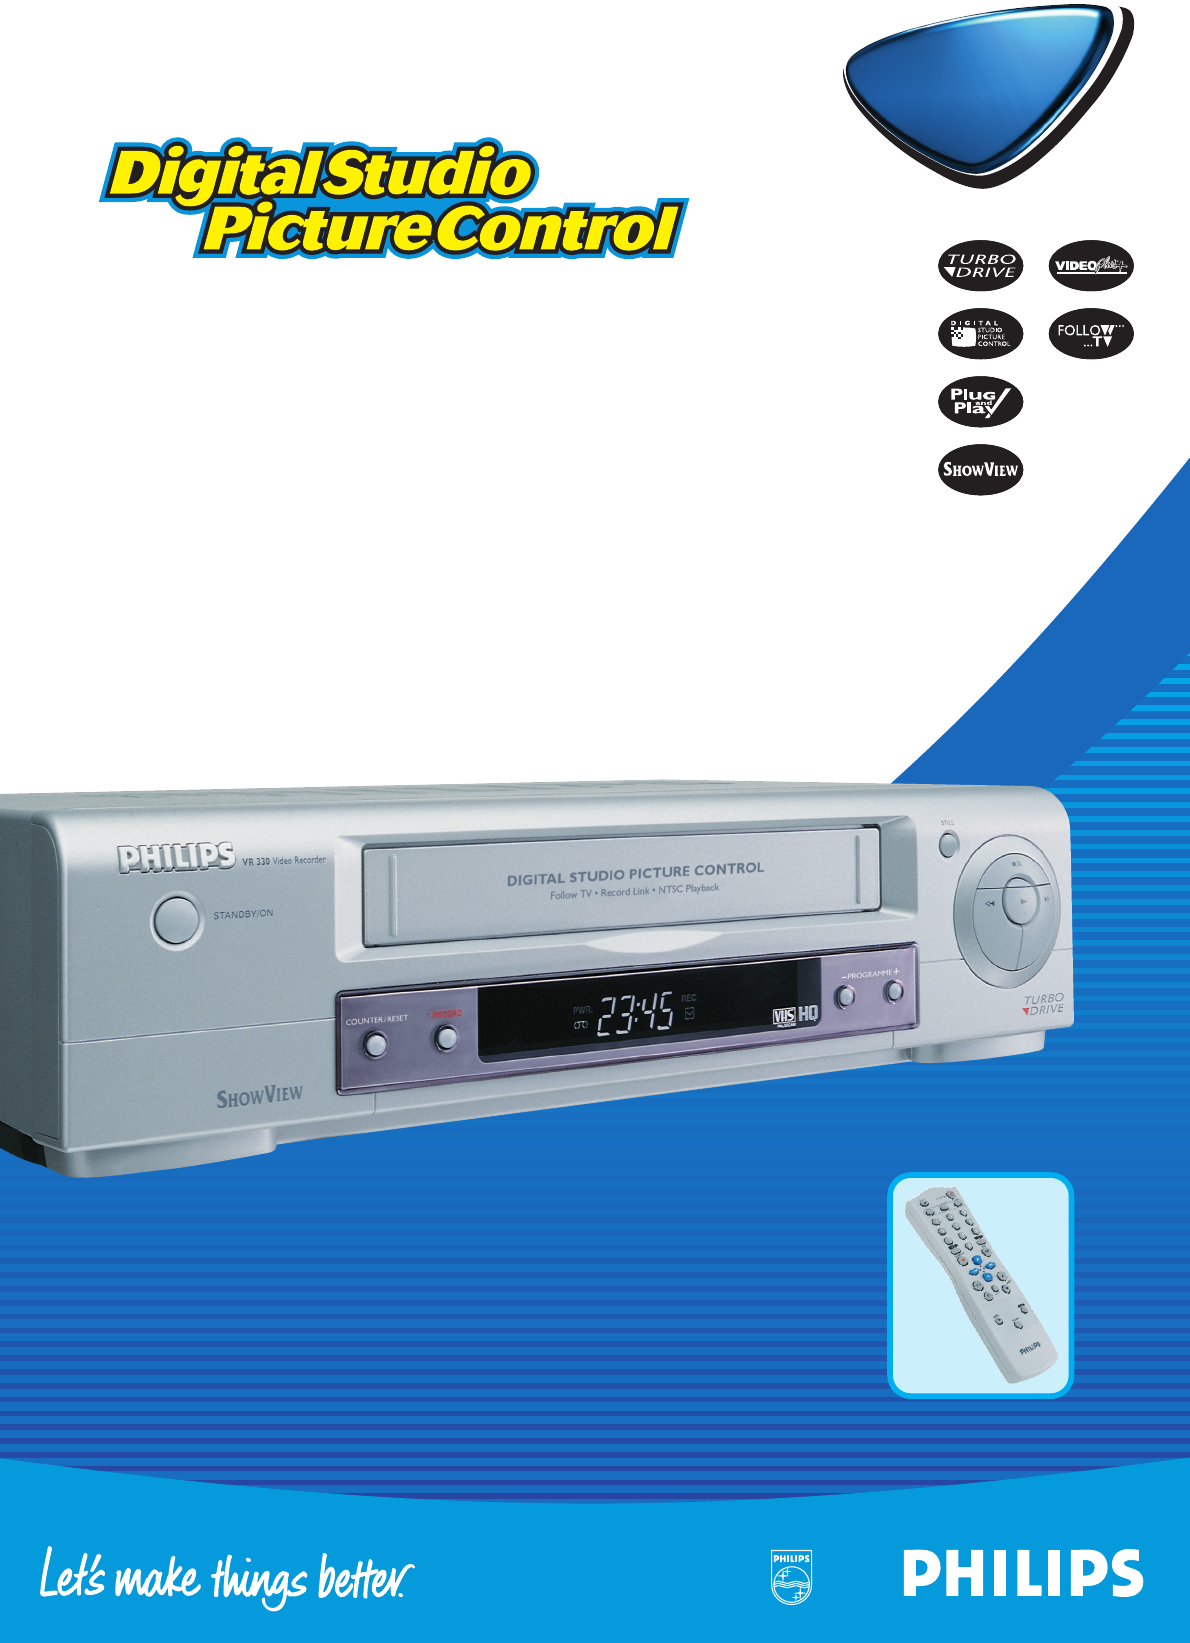 philips vcr vr 330 user guide manualsonline com rh tv manualsonline com Philips User Guides Speaker Bt7900 Philips Universal Remote User Manual